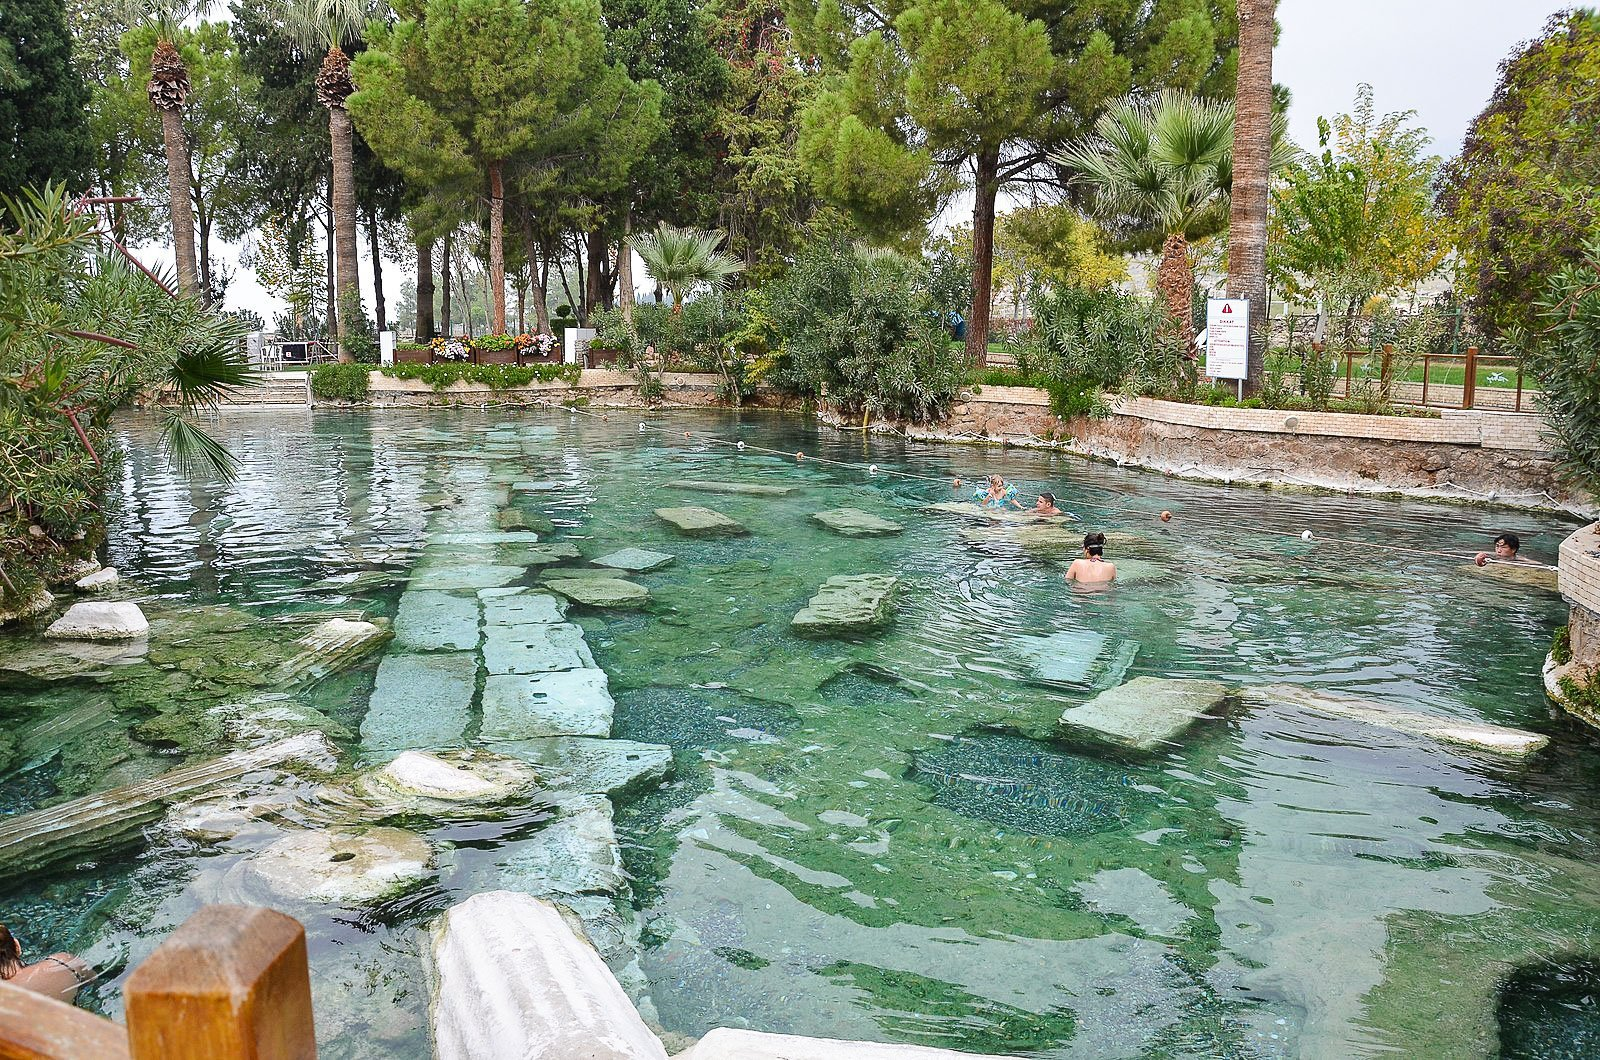 Antique Pool - Cleopatra's pool